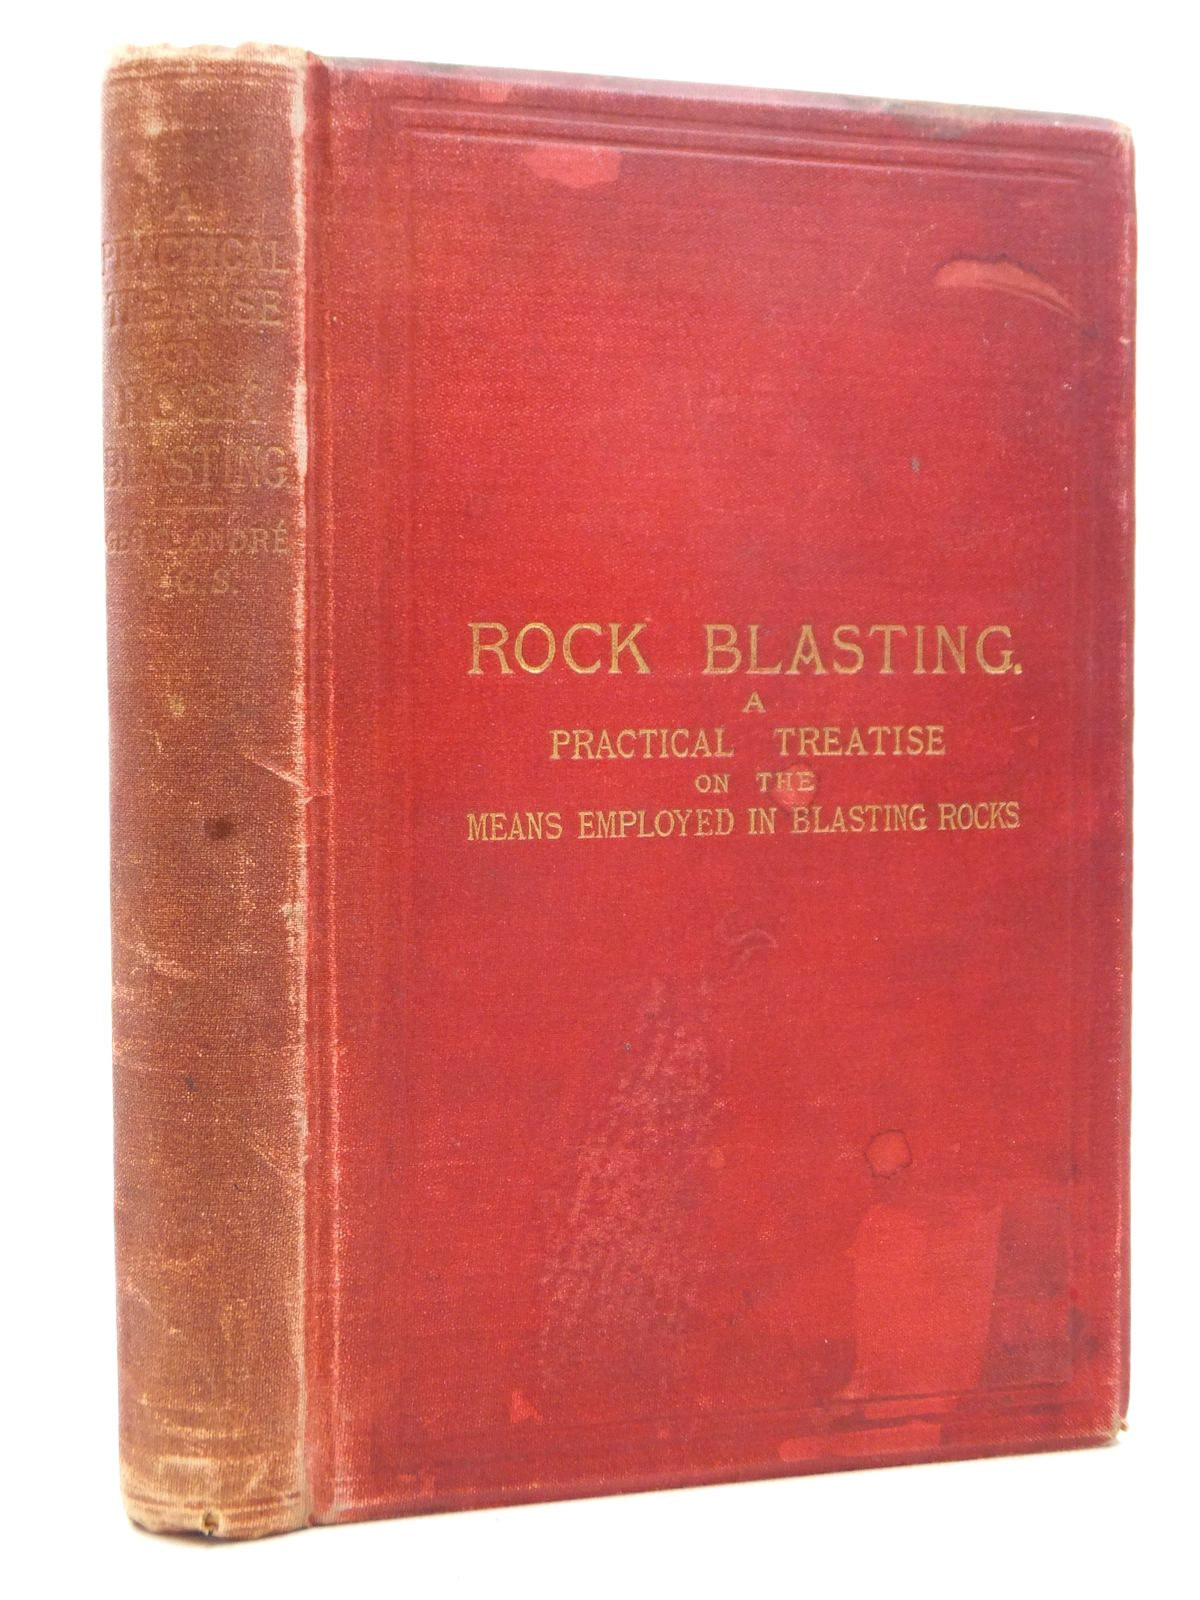 Photo of ROCK BLASTING written by Andre, Geo. G. published by E. & F.N. Spon (STOCK CODE: 1609459)  for sale by Stella & Rose's Books